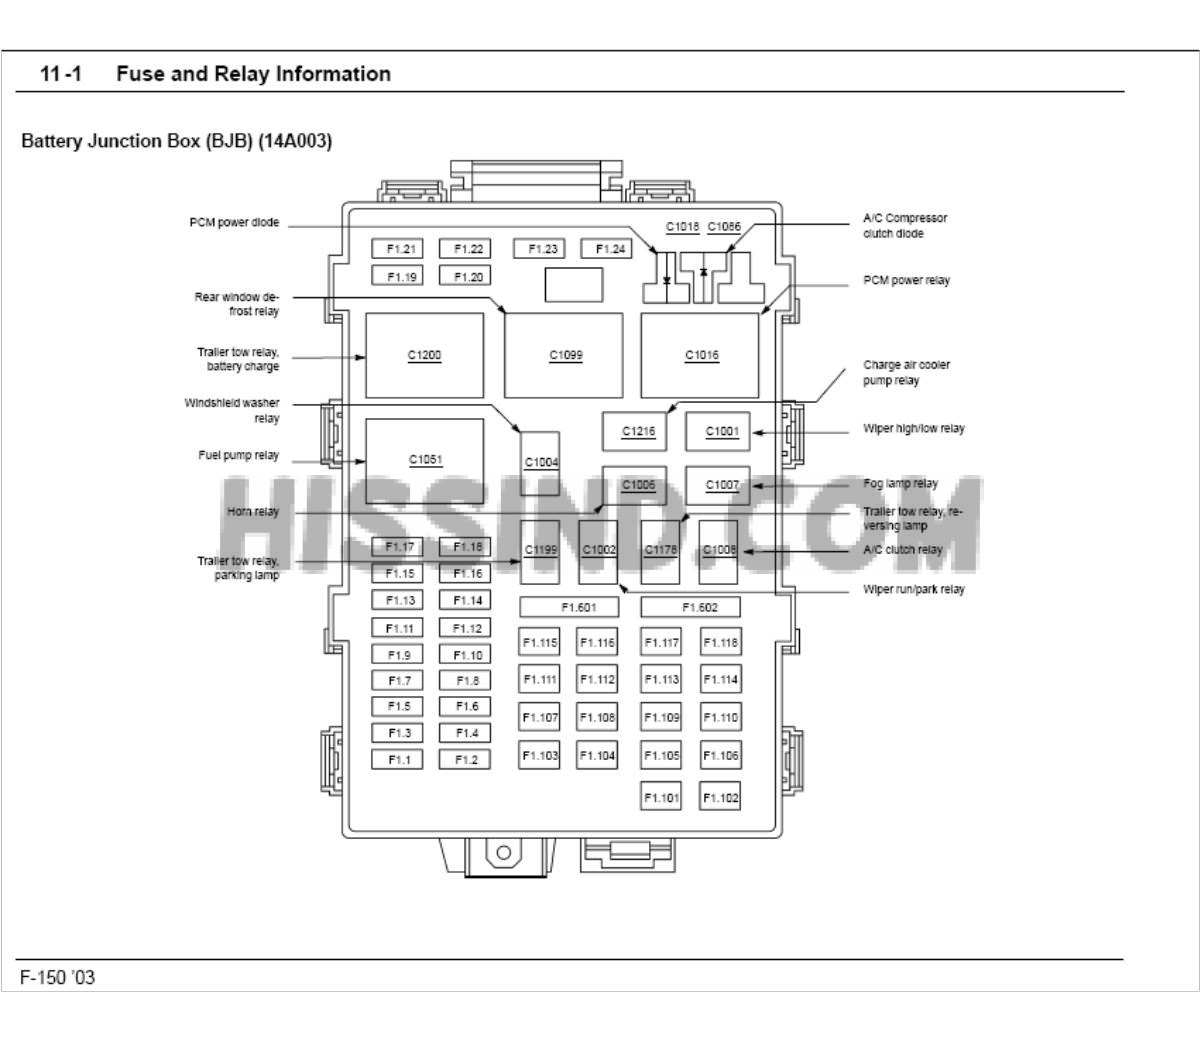 [WRG-3813] 2003 F150 Fuse Box Layout